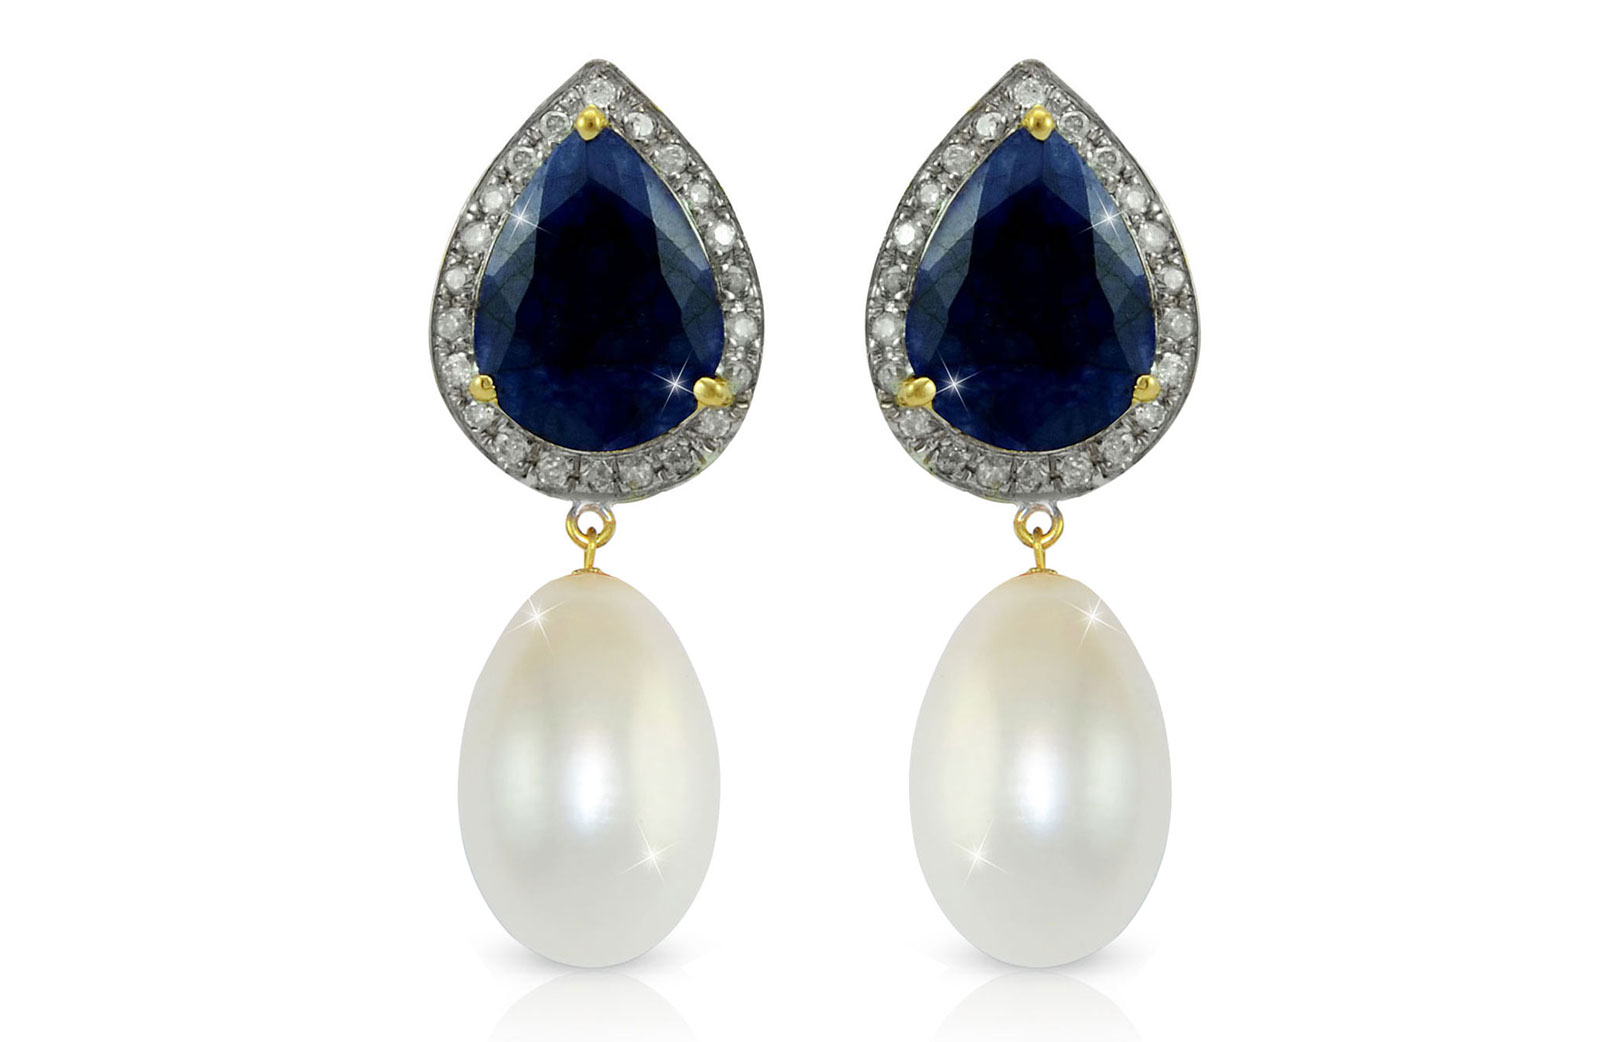 Vera Perla 18K Gold 0.24ct Diamonds, Royal Indian Sapphire and 13mm Pearl Earrings